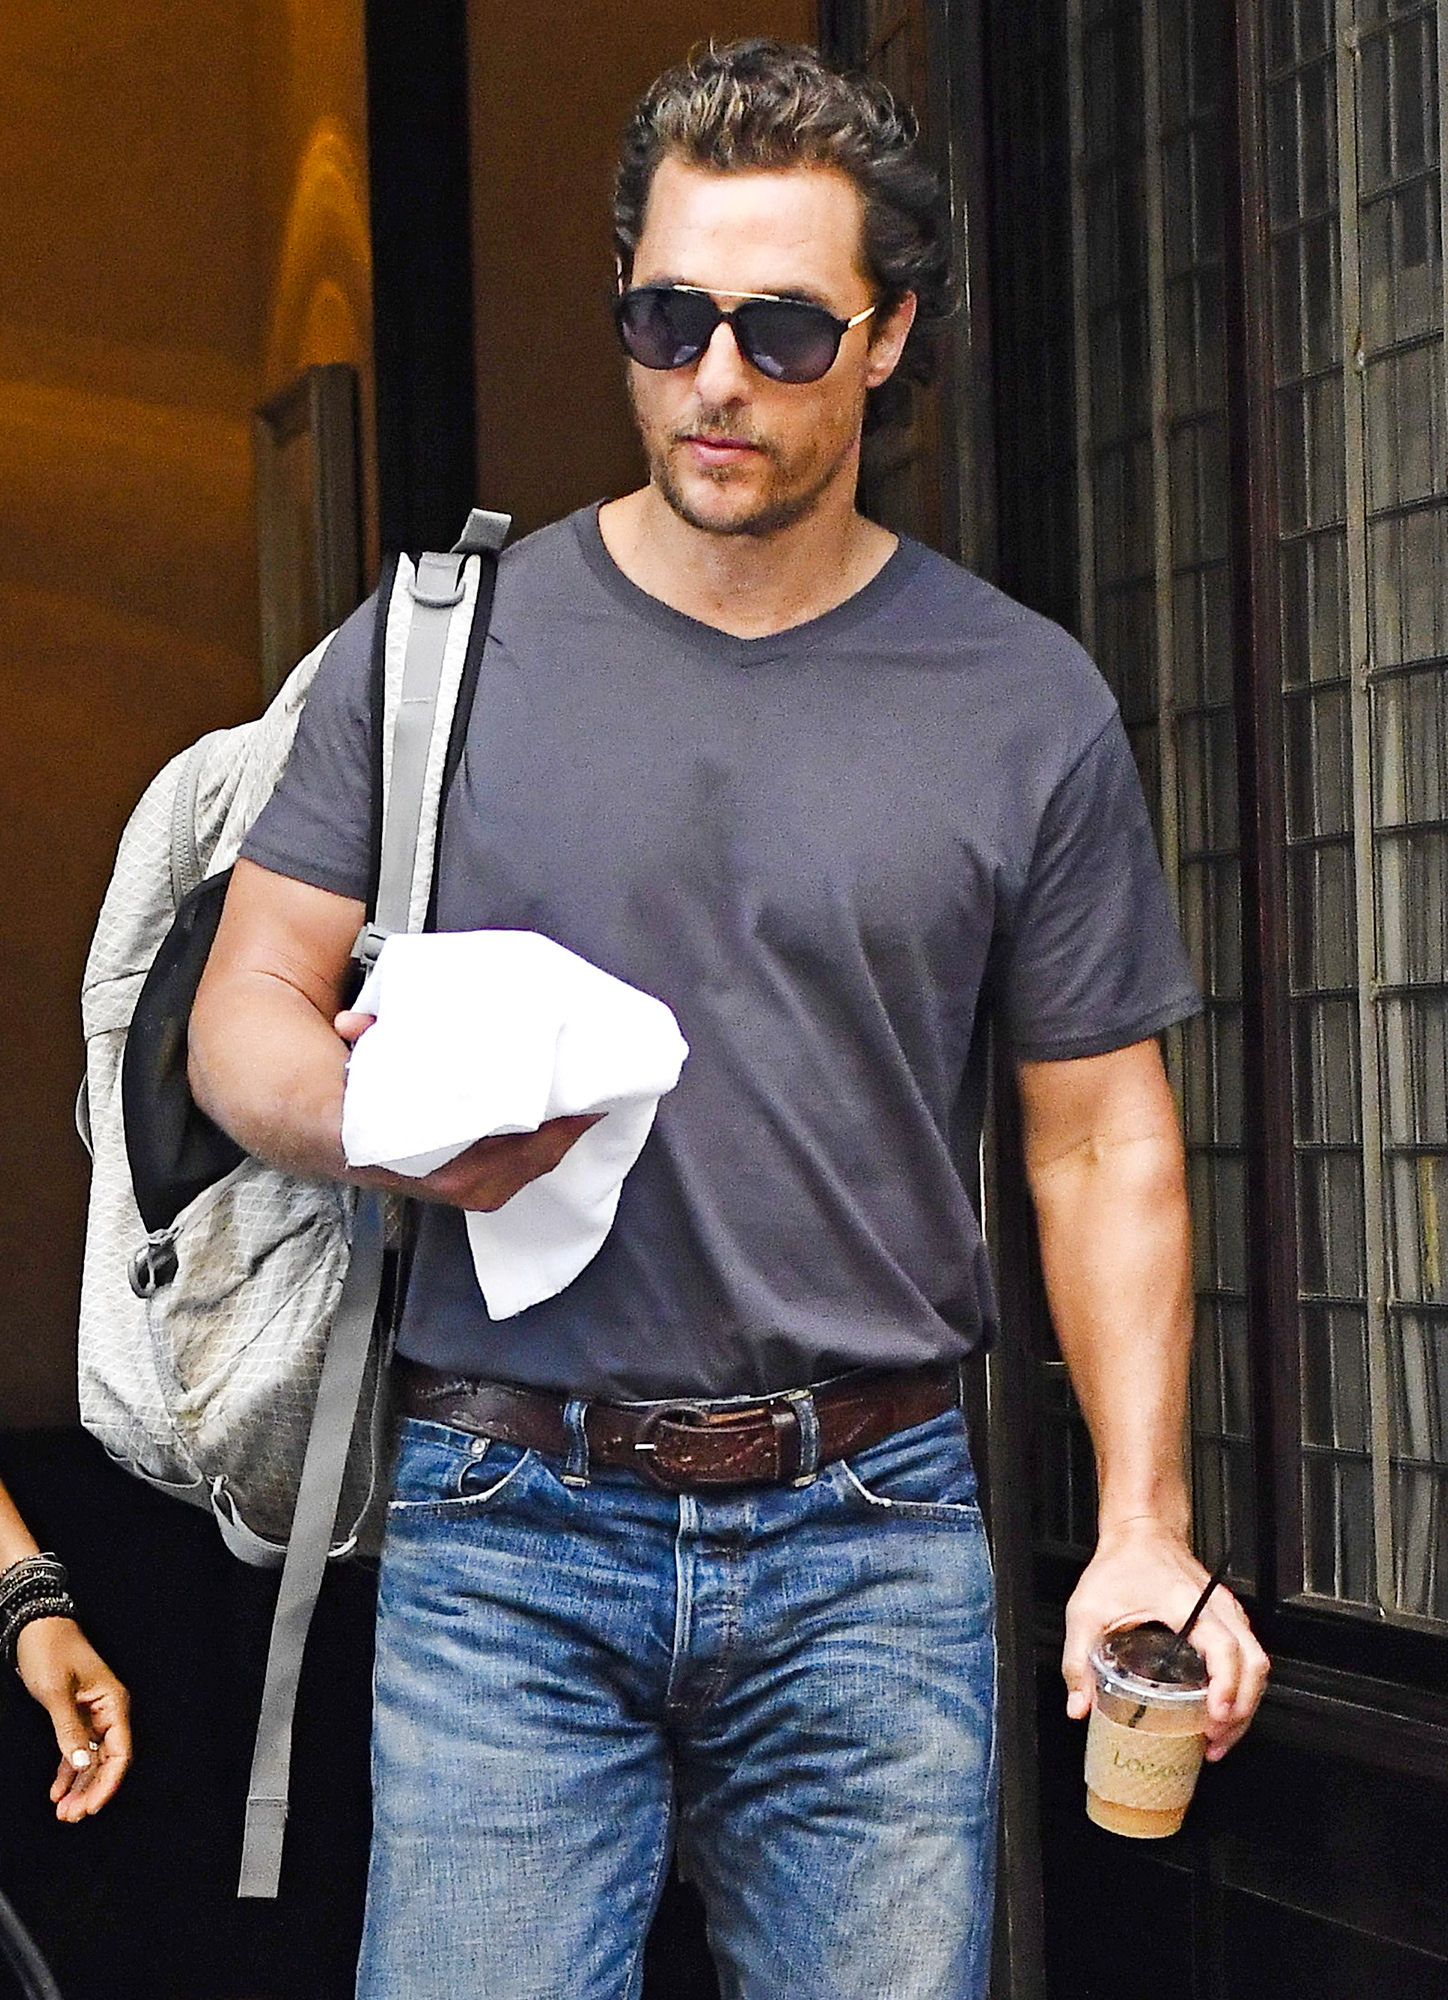 Matthew McConaughey leaves his hotel on his way to an appearance on Good Morning America to promote his new movie The Dark Tower